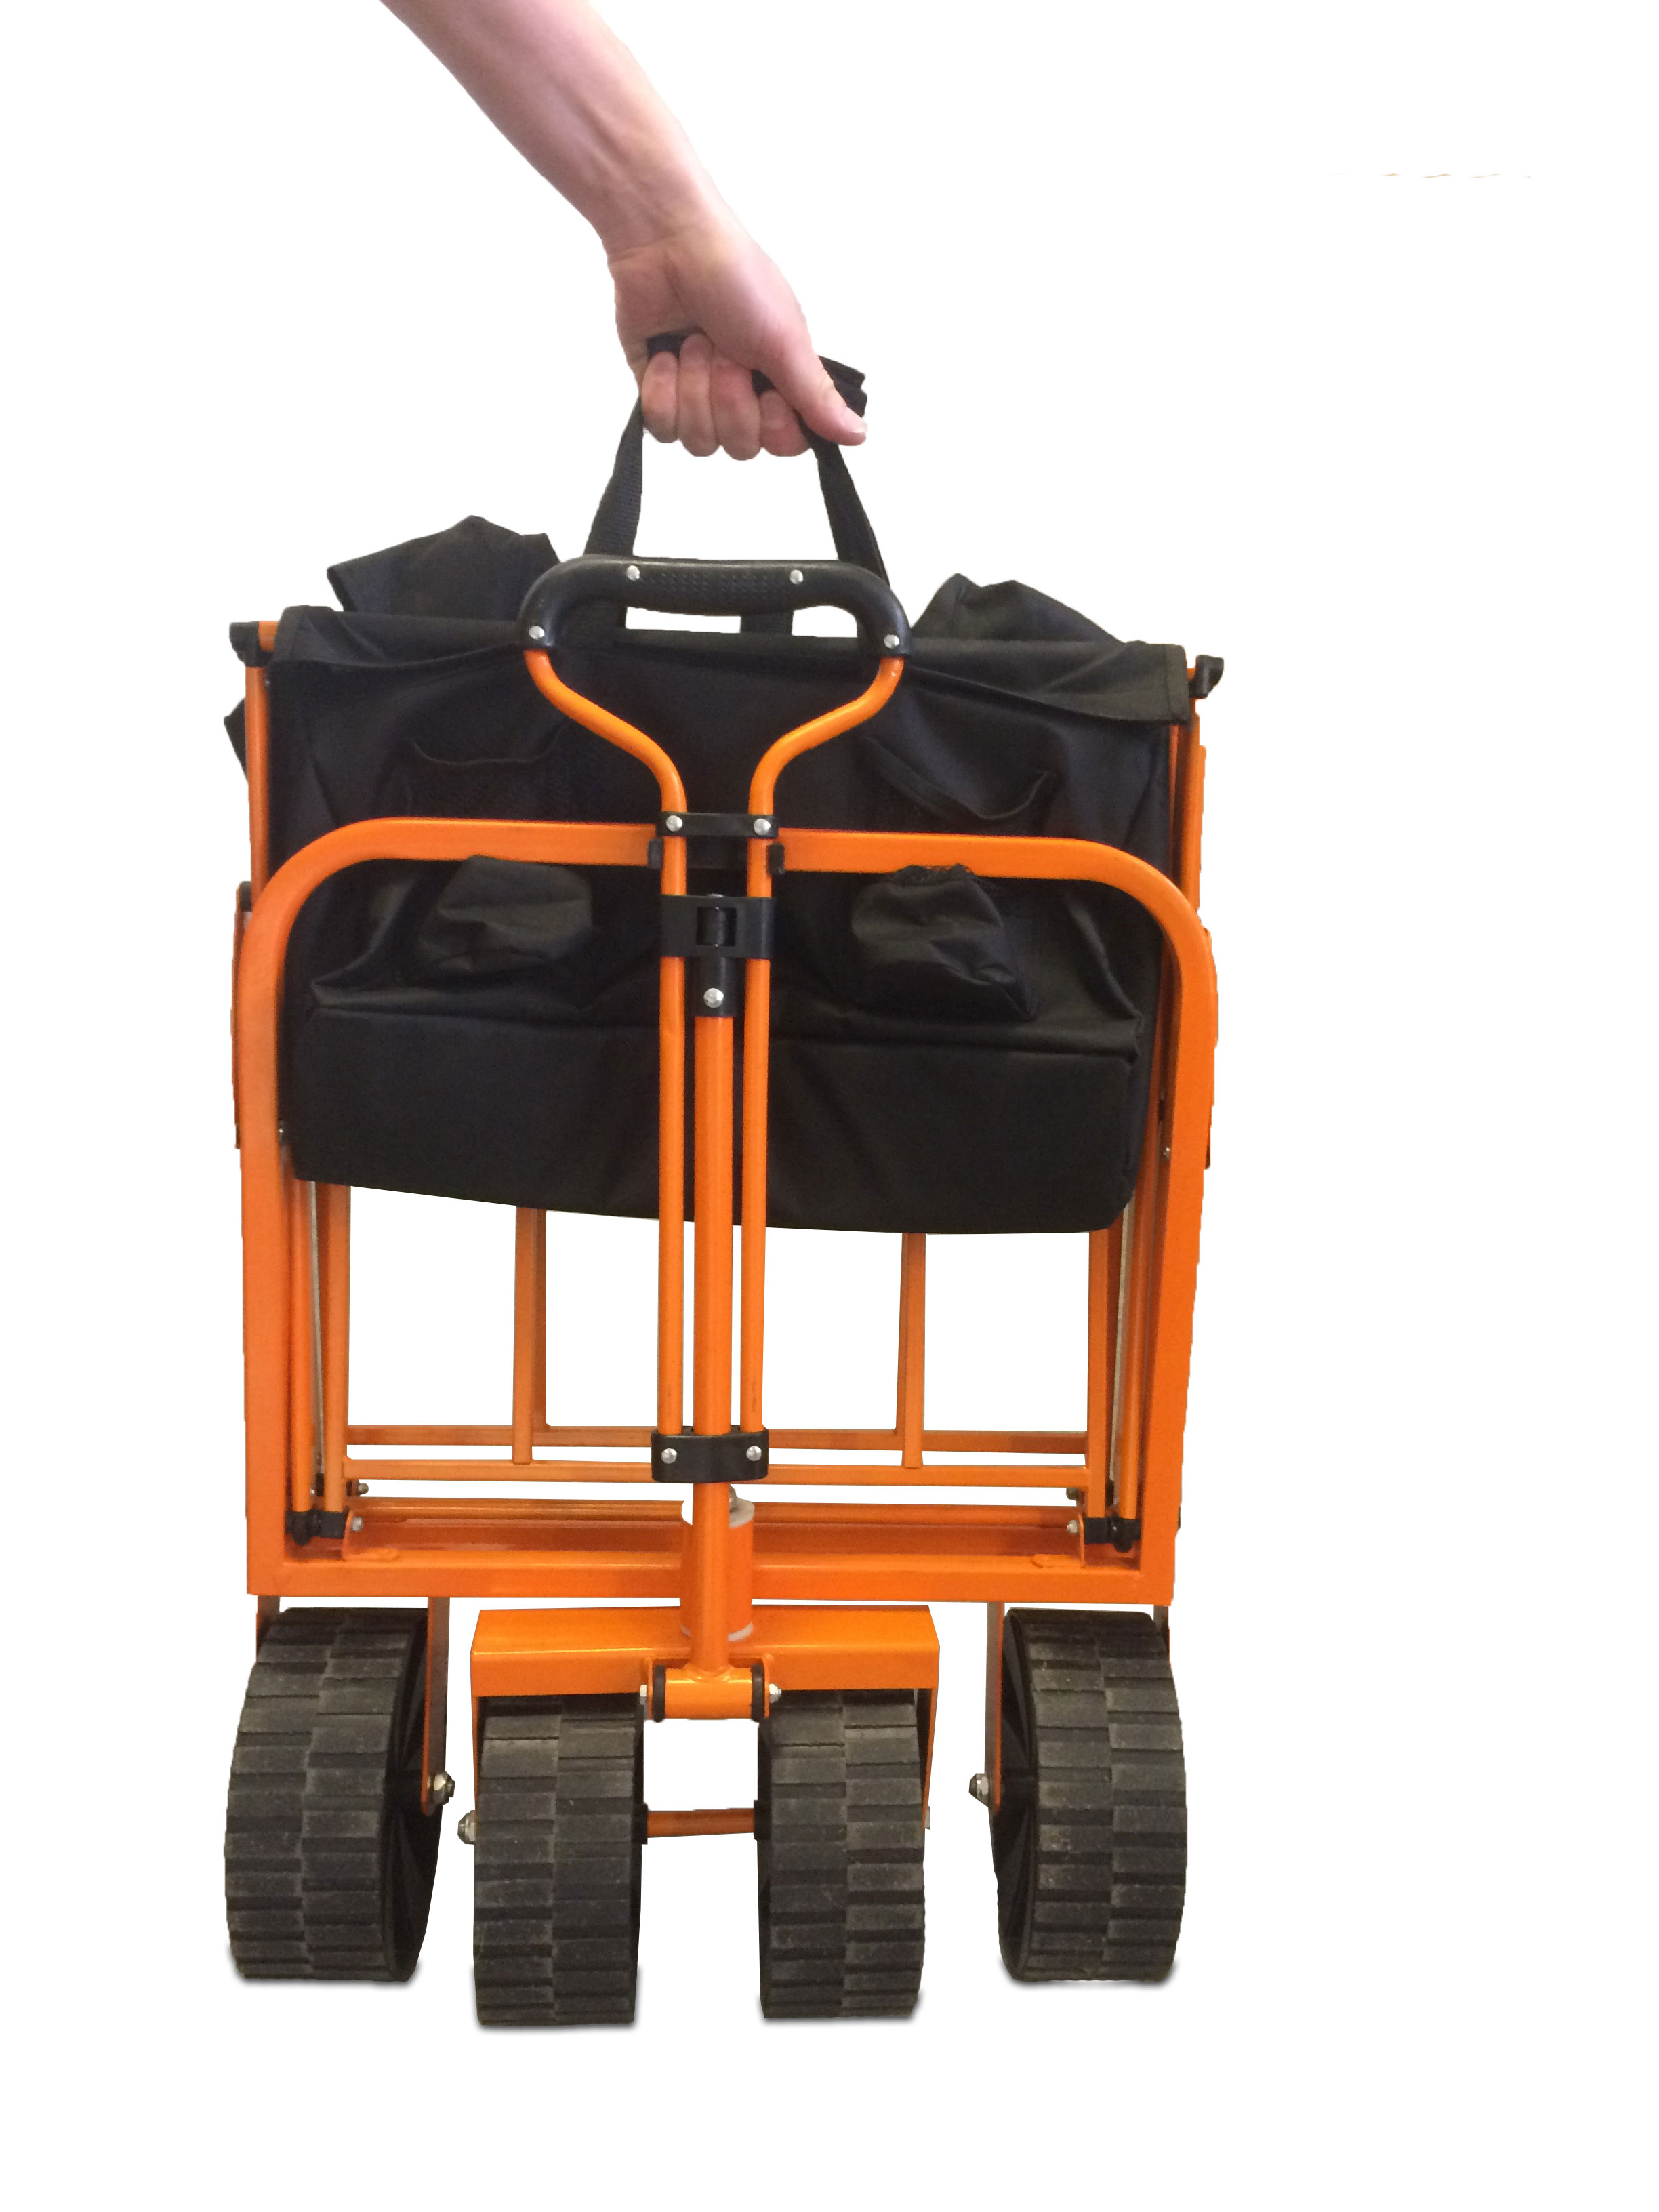 Sherpa Folding Cart Trolly Carries up 150KG SAVE £20